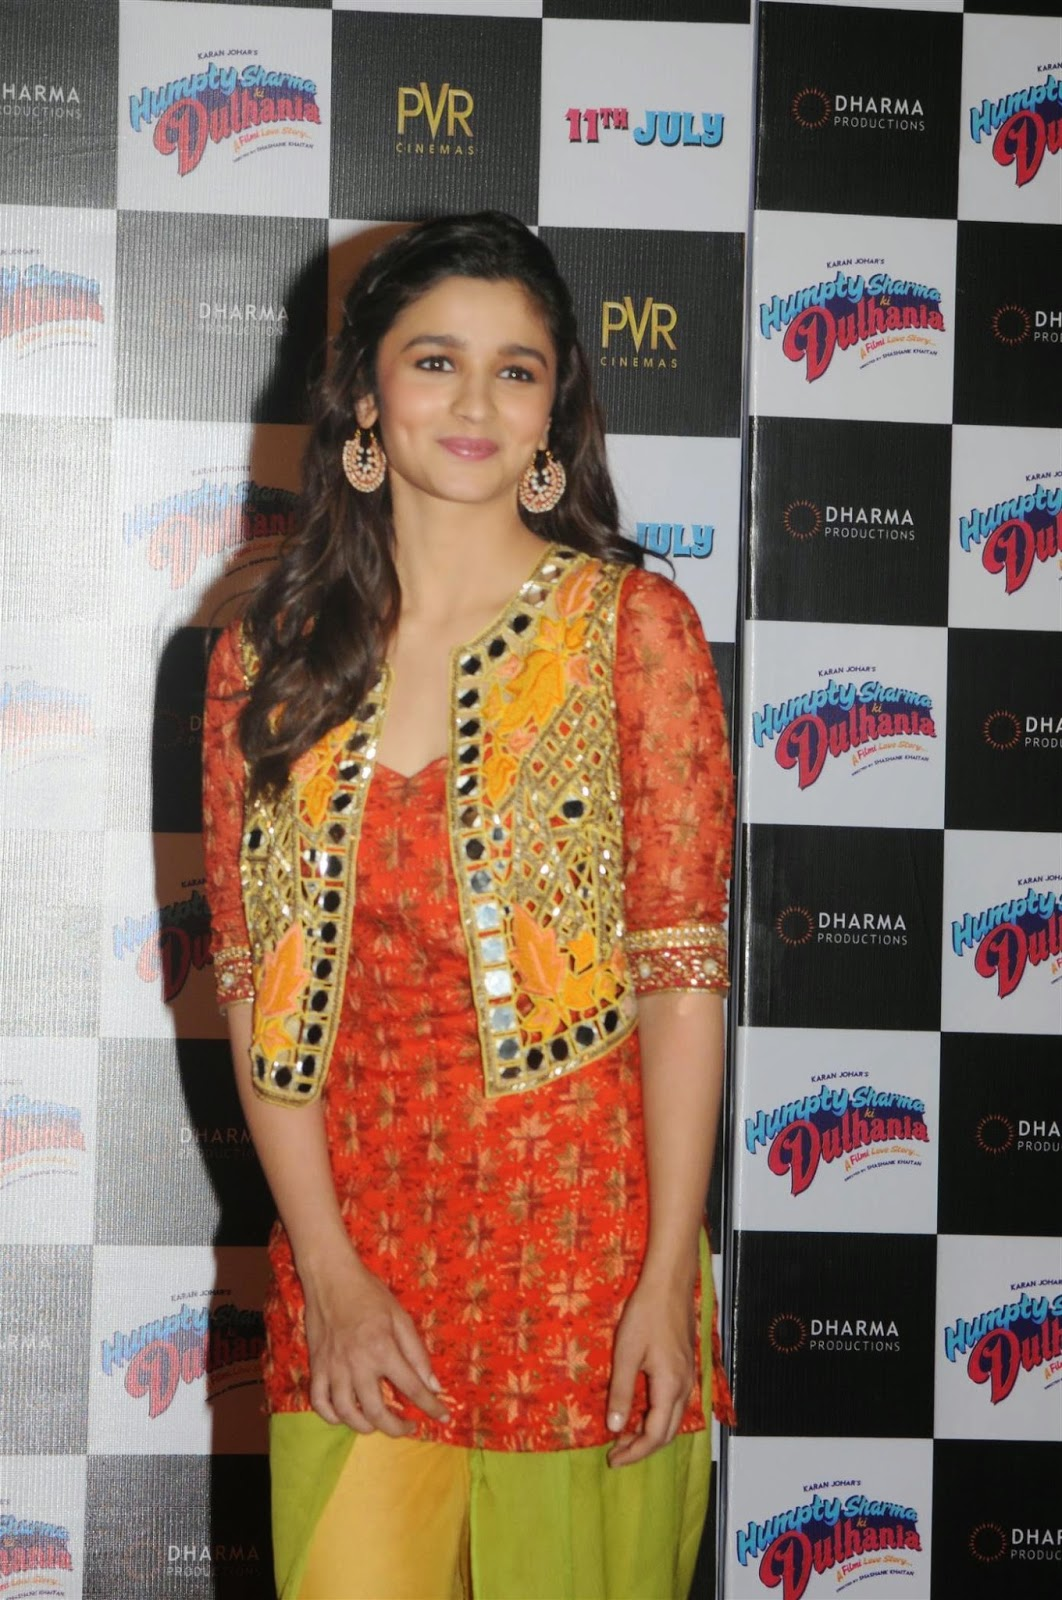 High Quality Bollywood Celebrity Pictures Alia Bhatt -7928